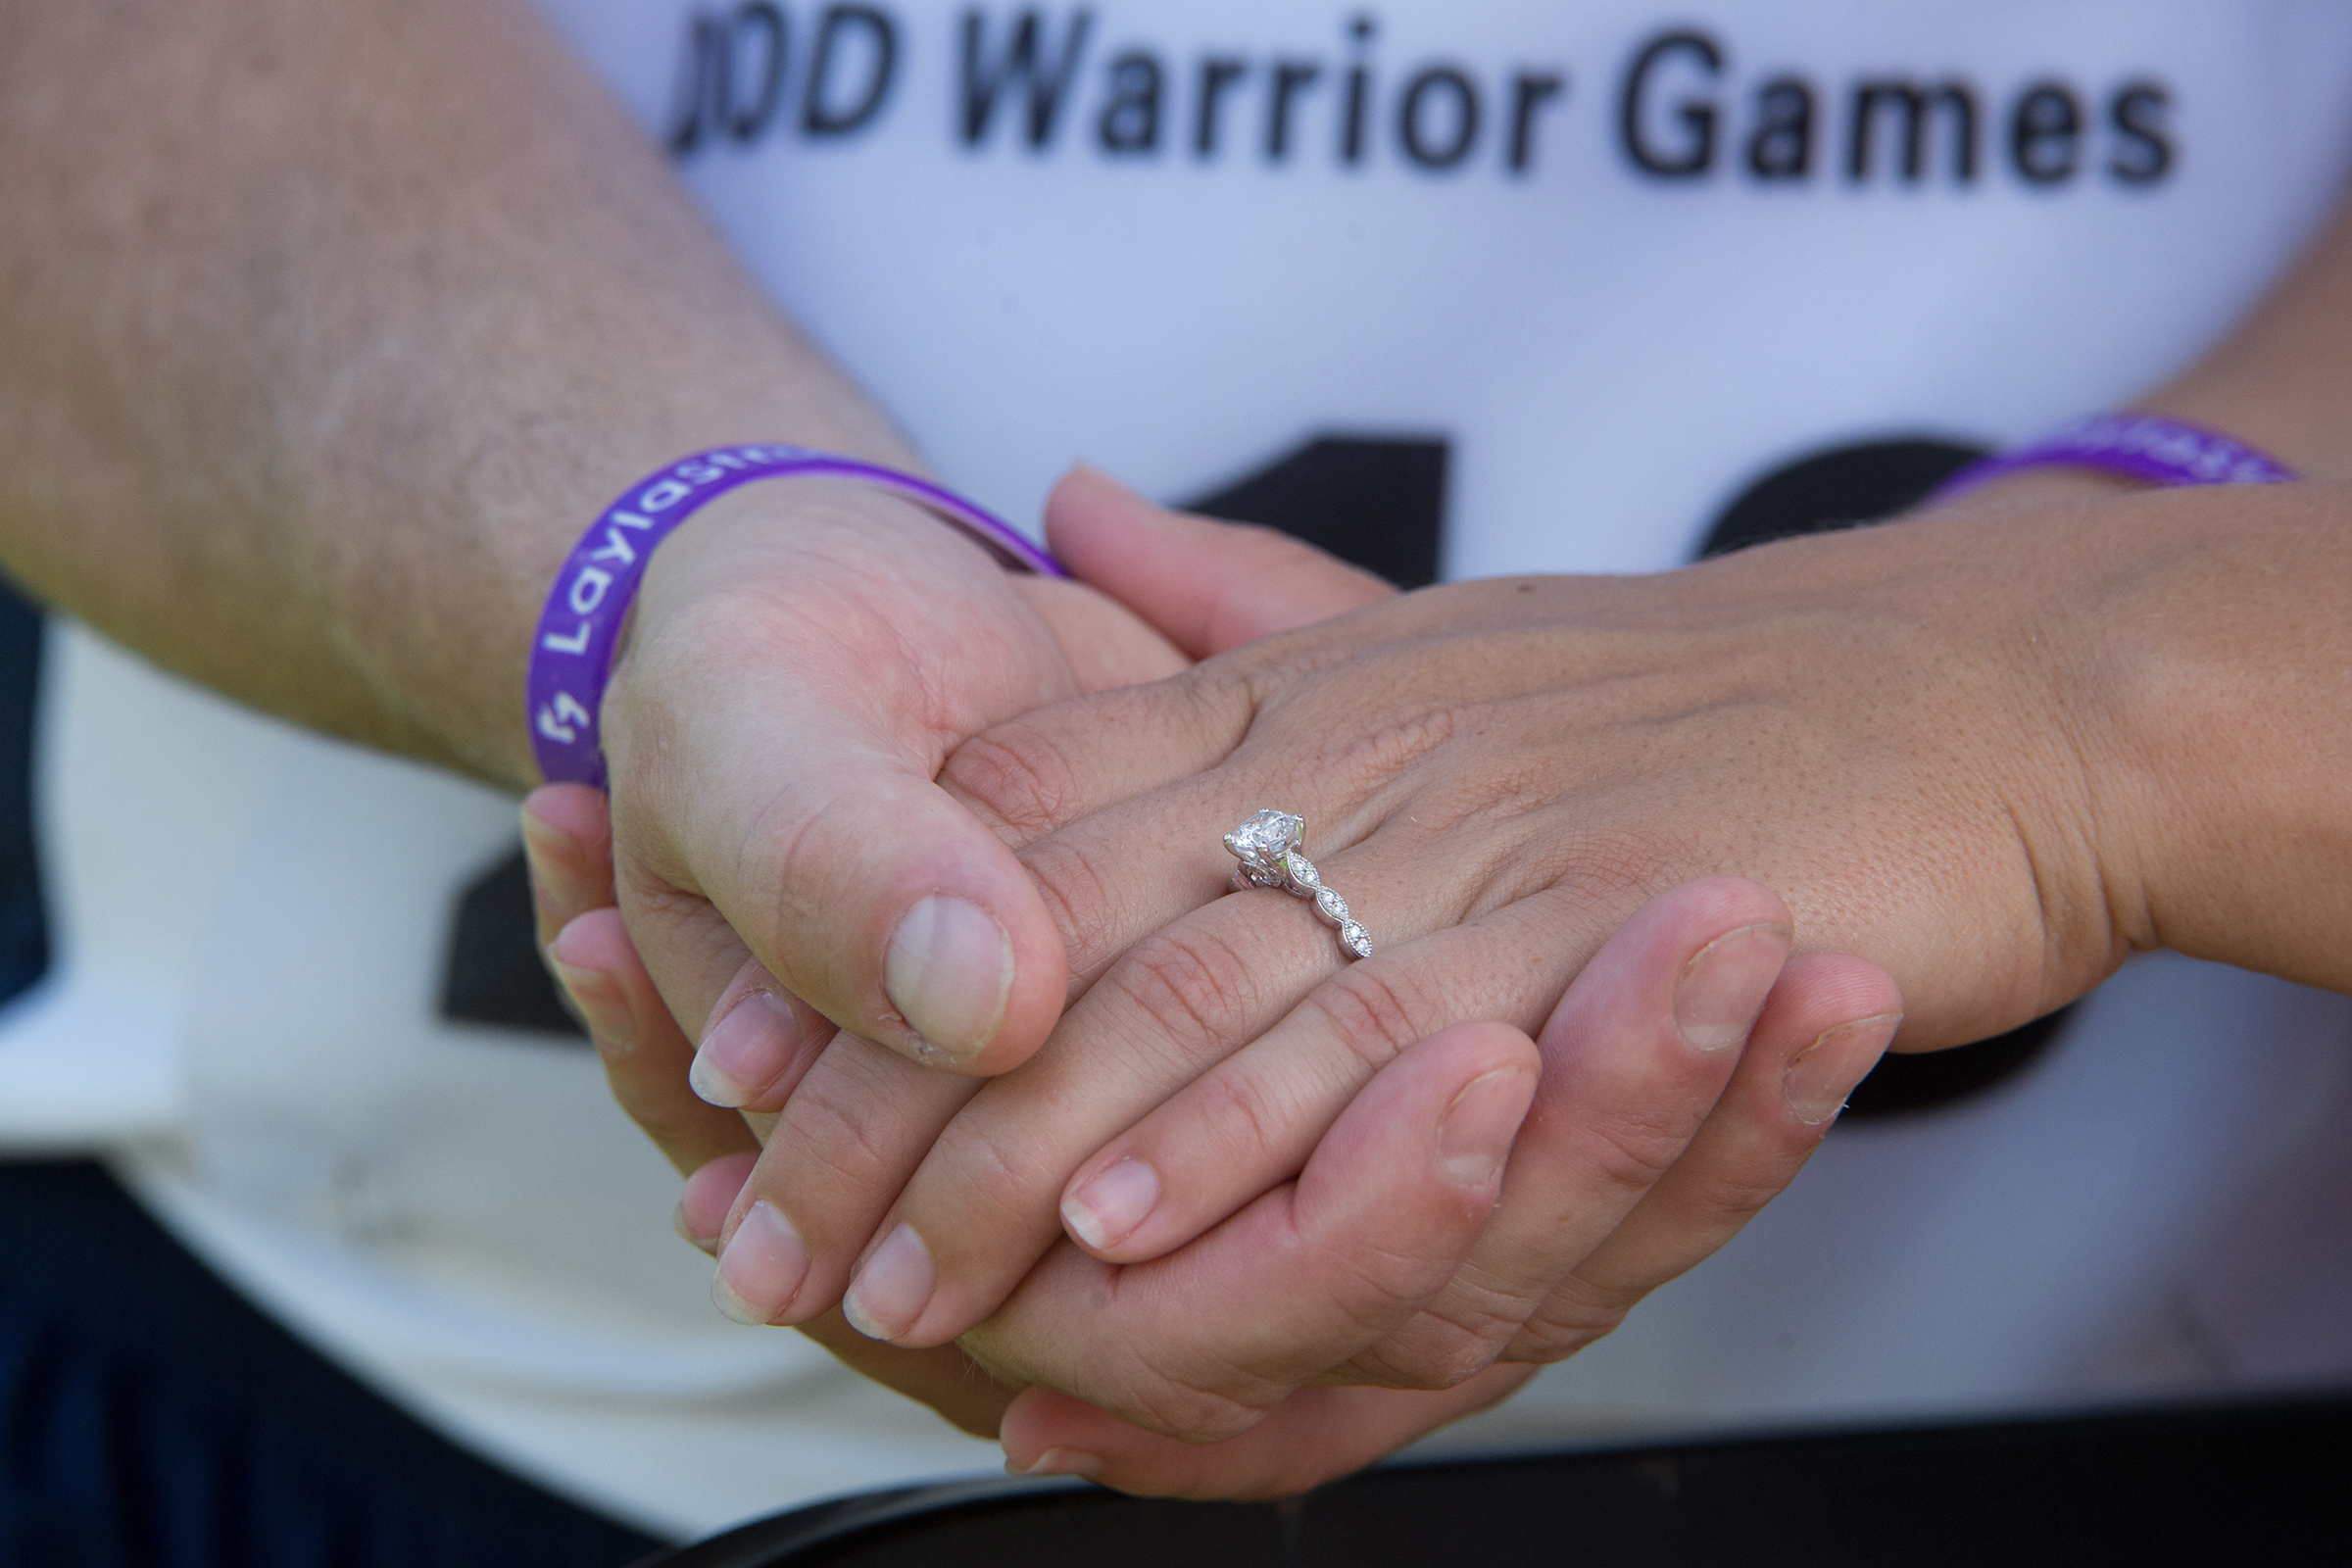 Runners Get Engaged at DoD Warrior Games, Dedicate Medal to Niece ...